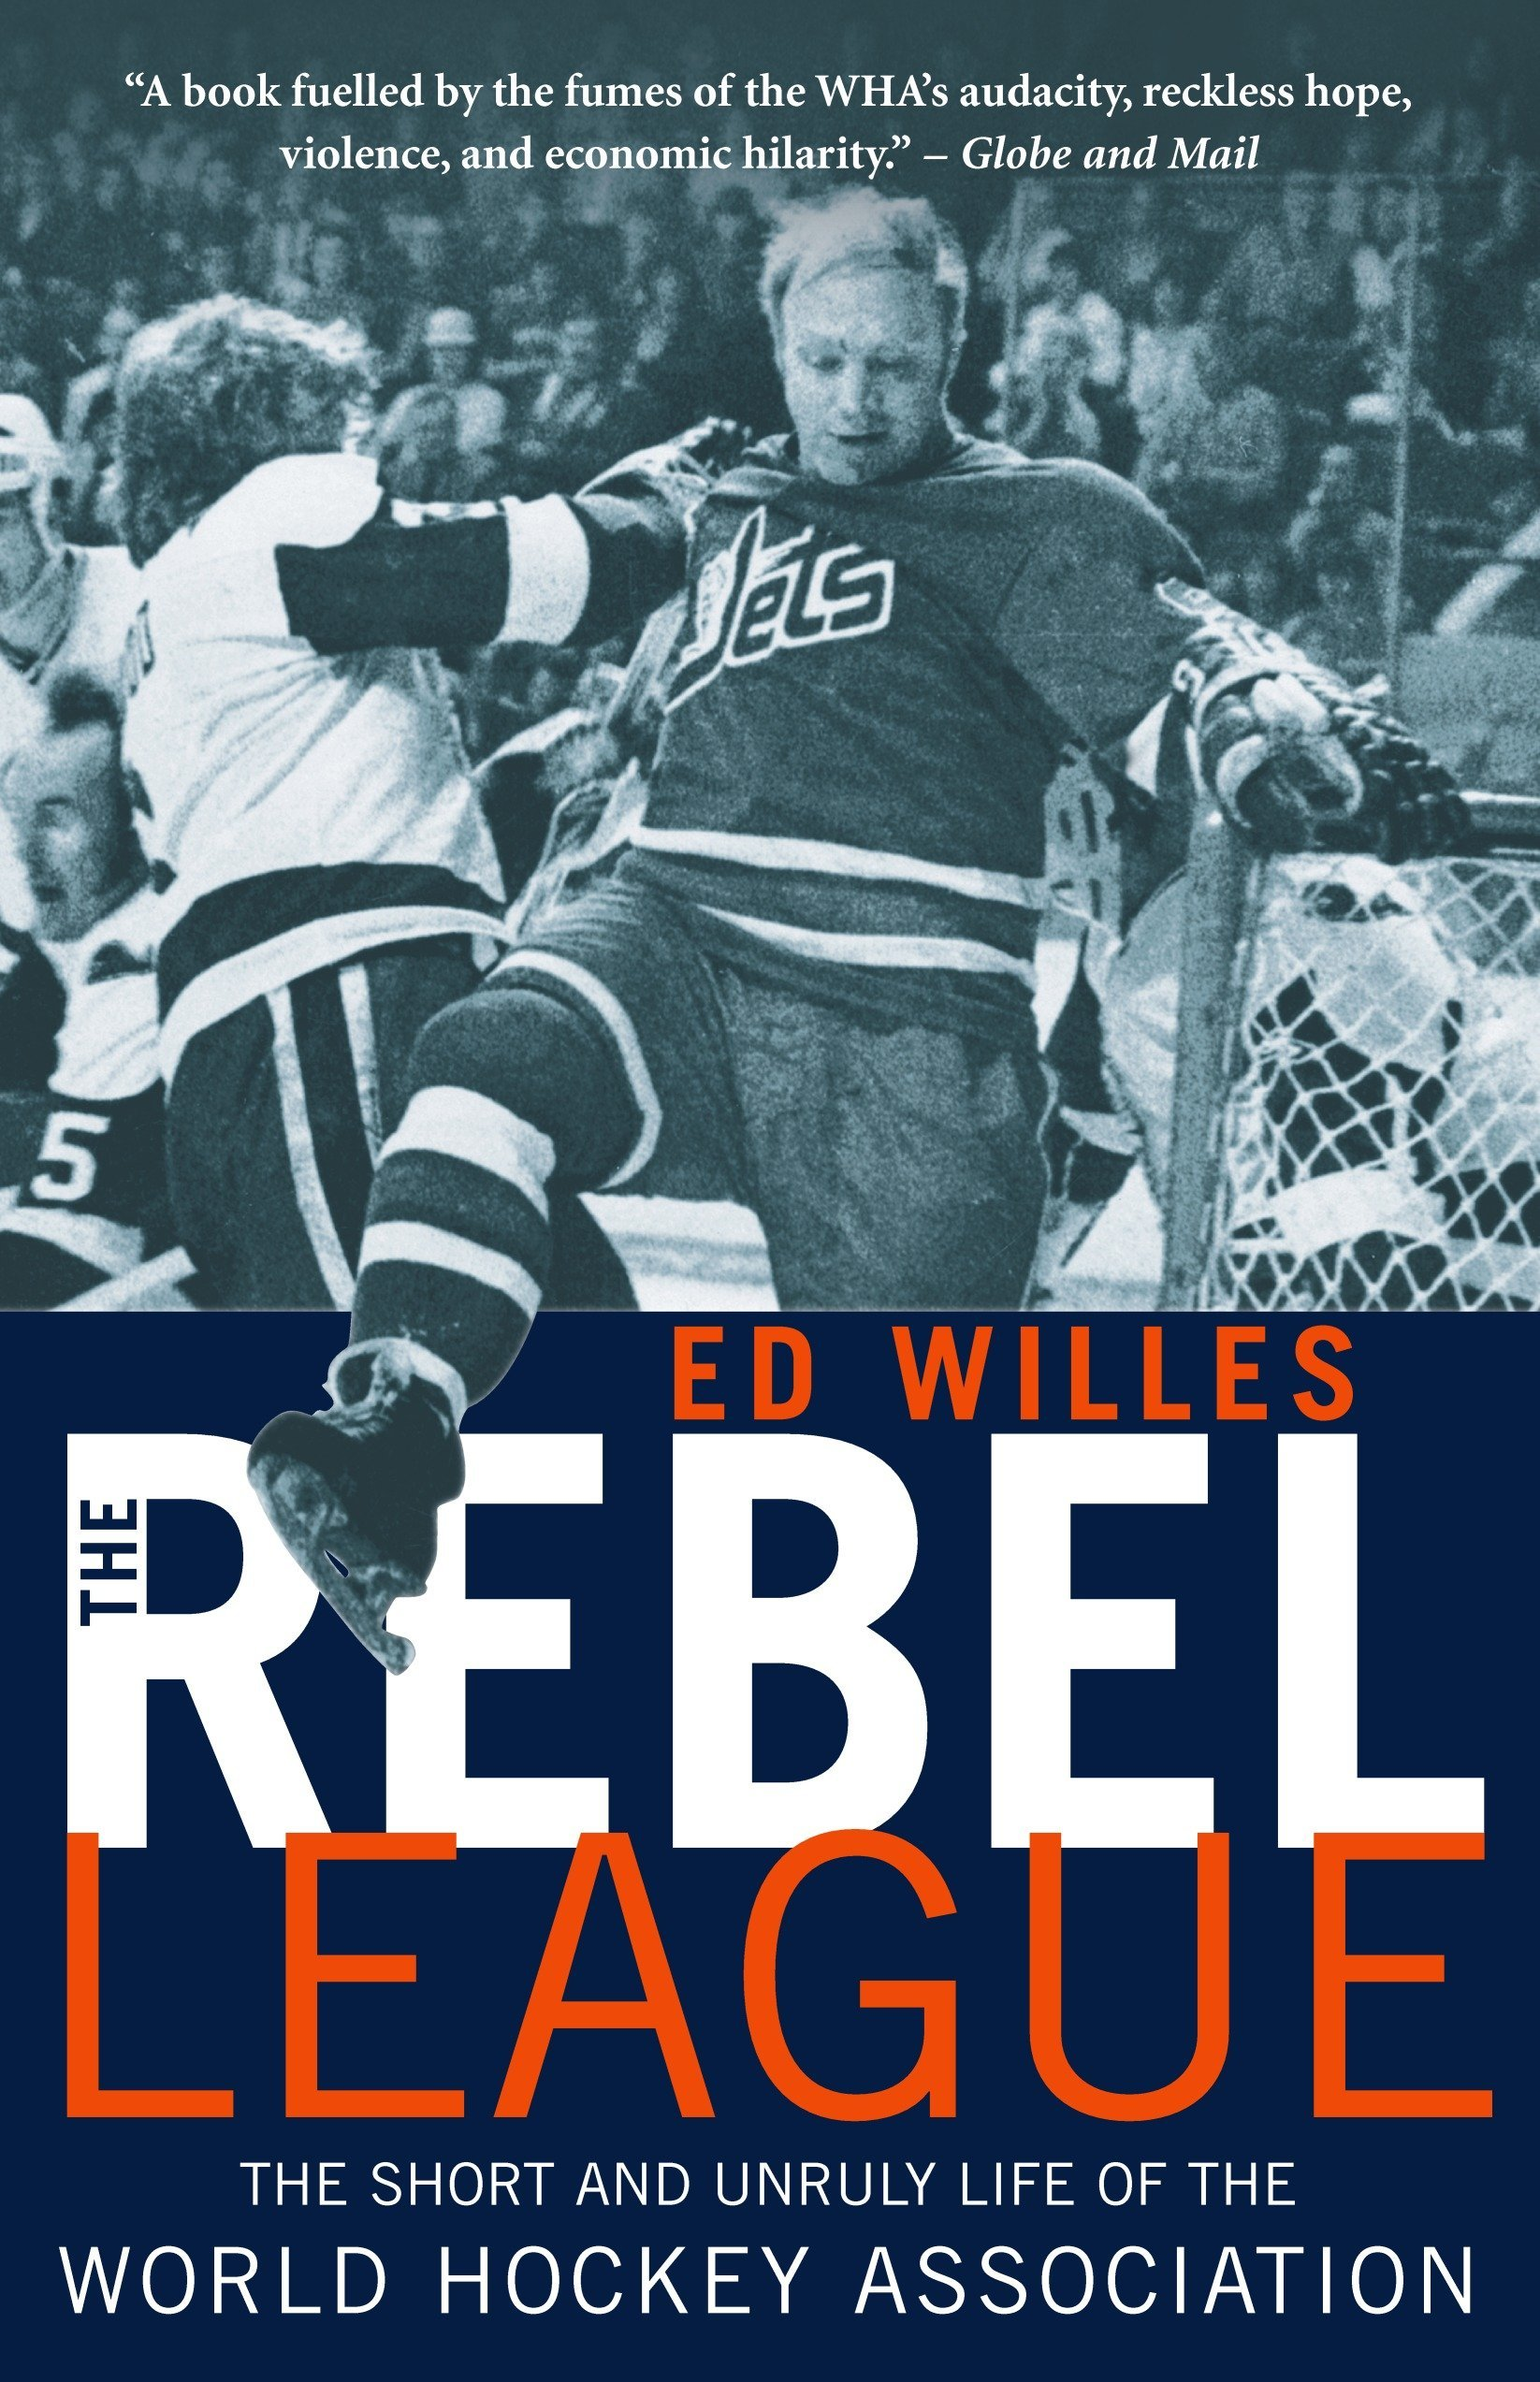 The Rebel League: The Short and Unruly Life of the World Hockey Association Paperback – October 4, 2005 Ed Willes McClelland & Stewart 077108949X History